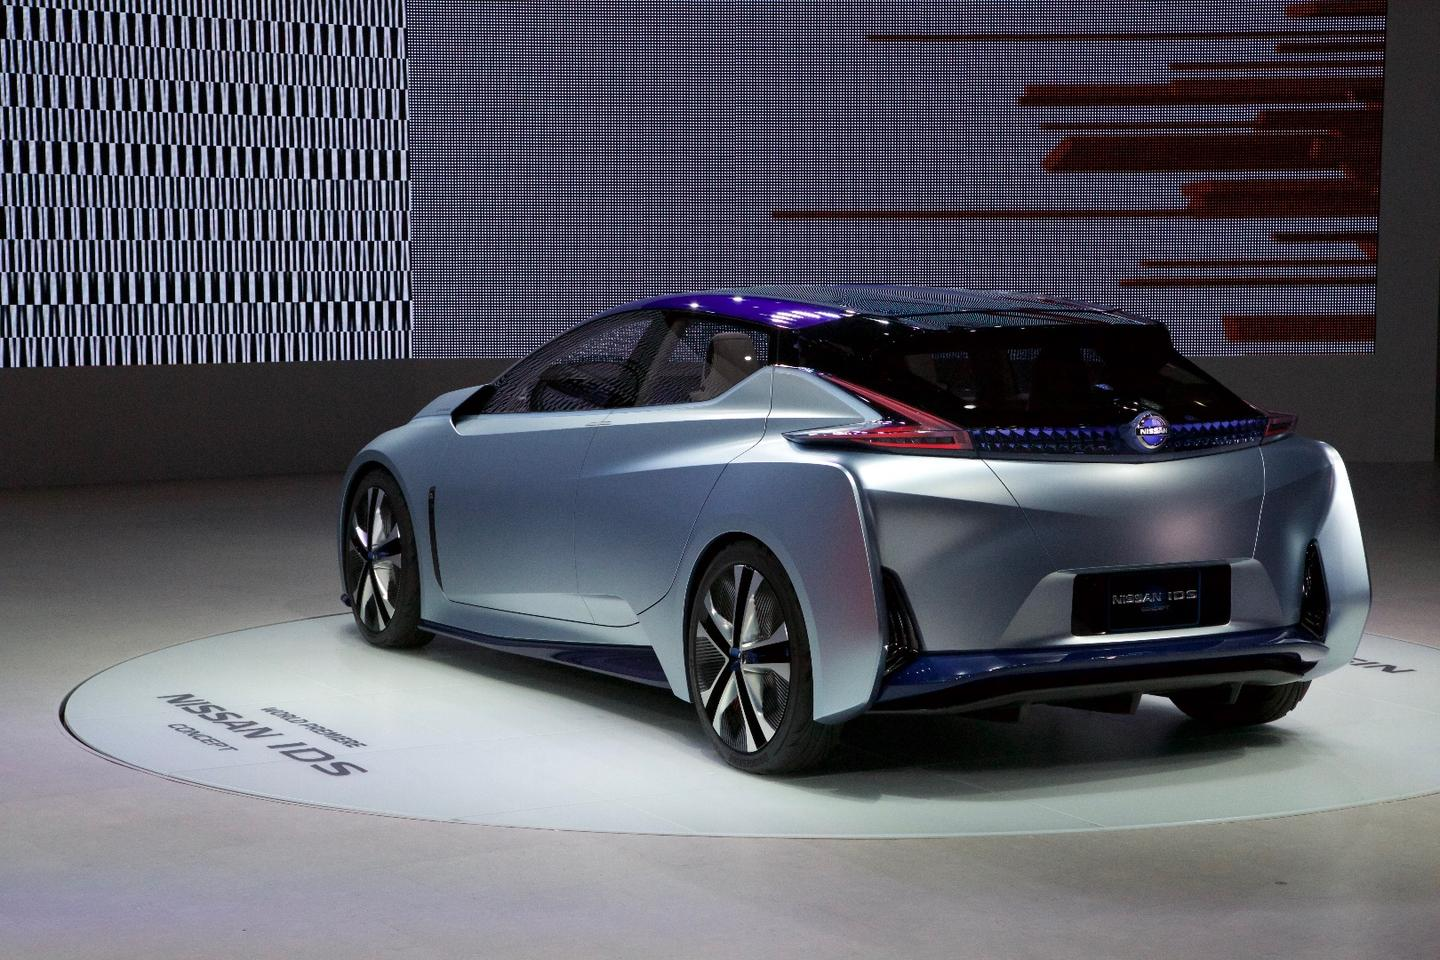 Nissan IDS Concept as seen from the rear quarter on the Tokyo Show floor